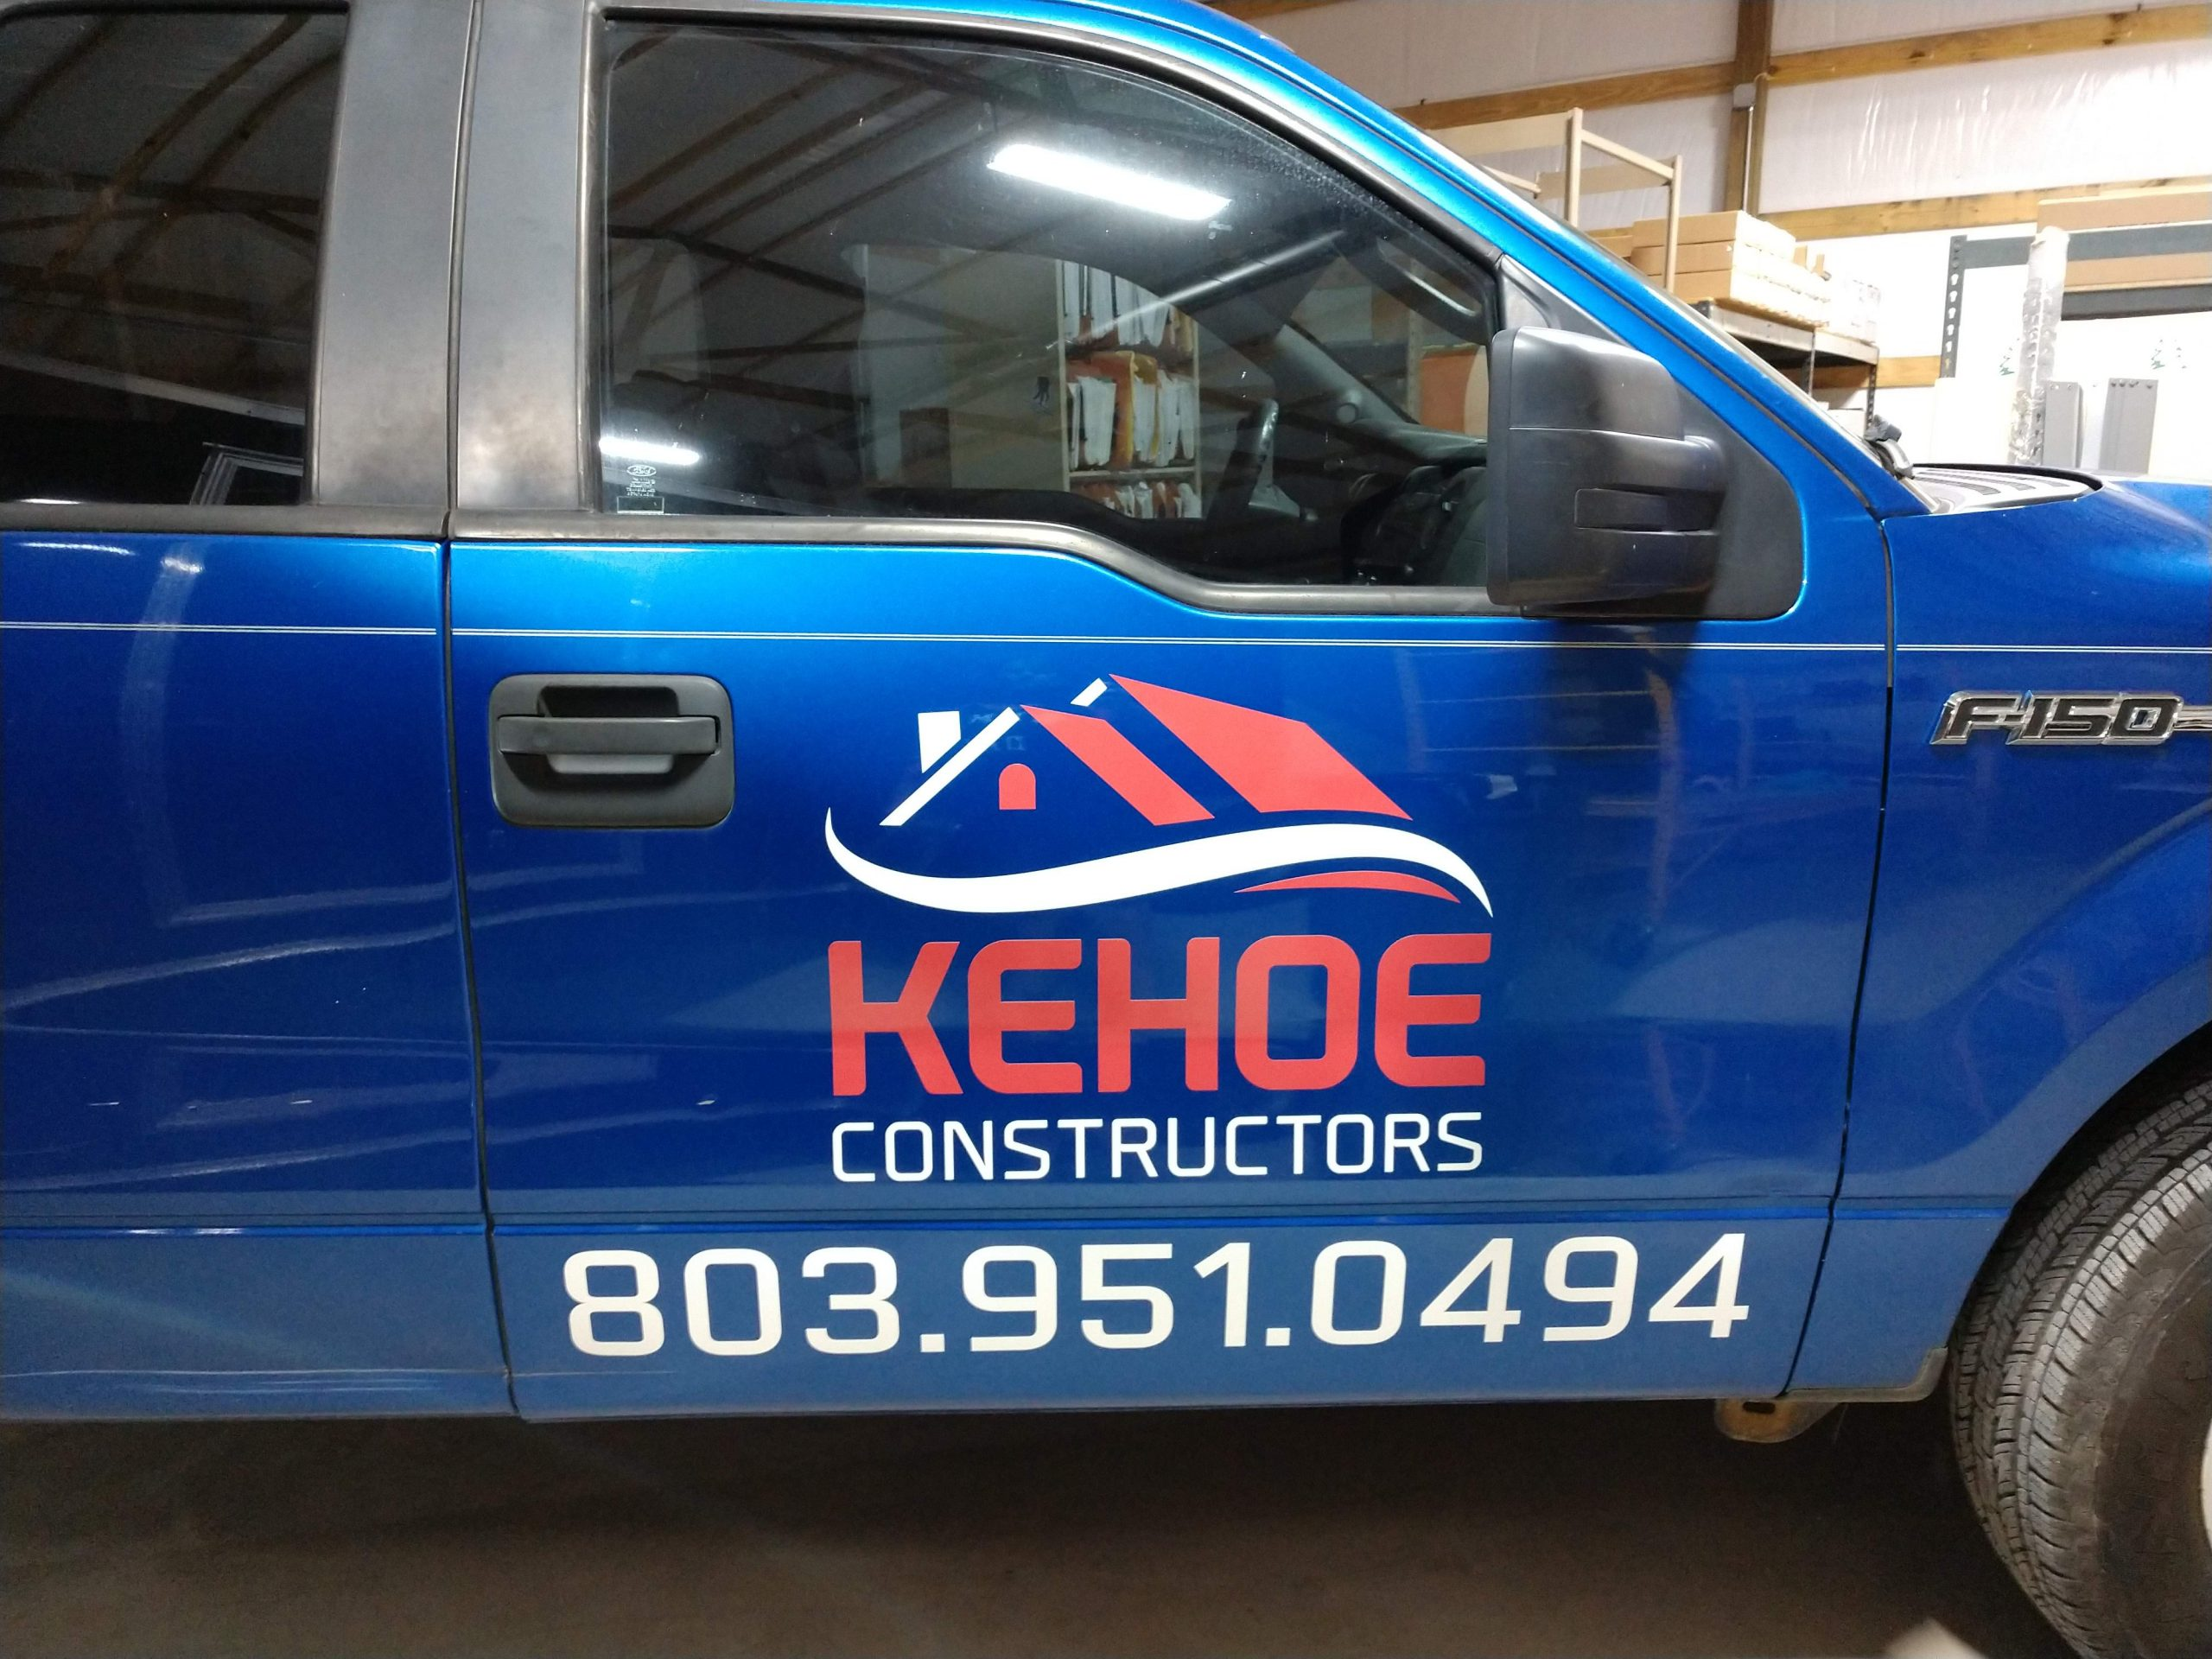 Kehoe Construction